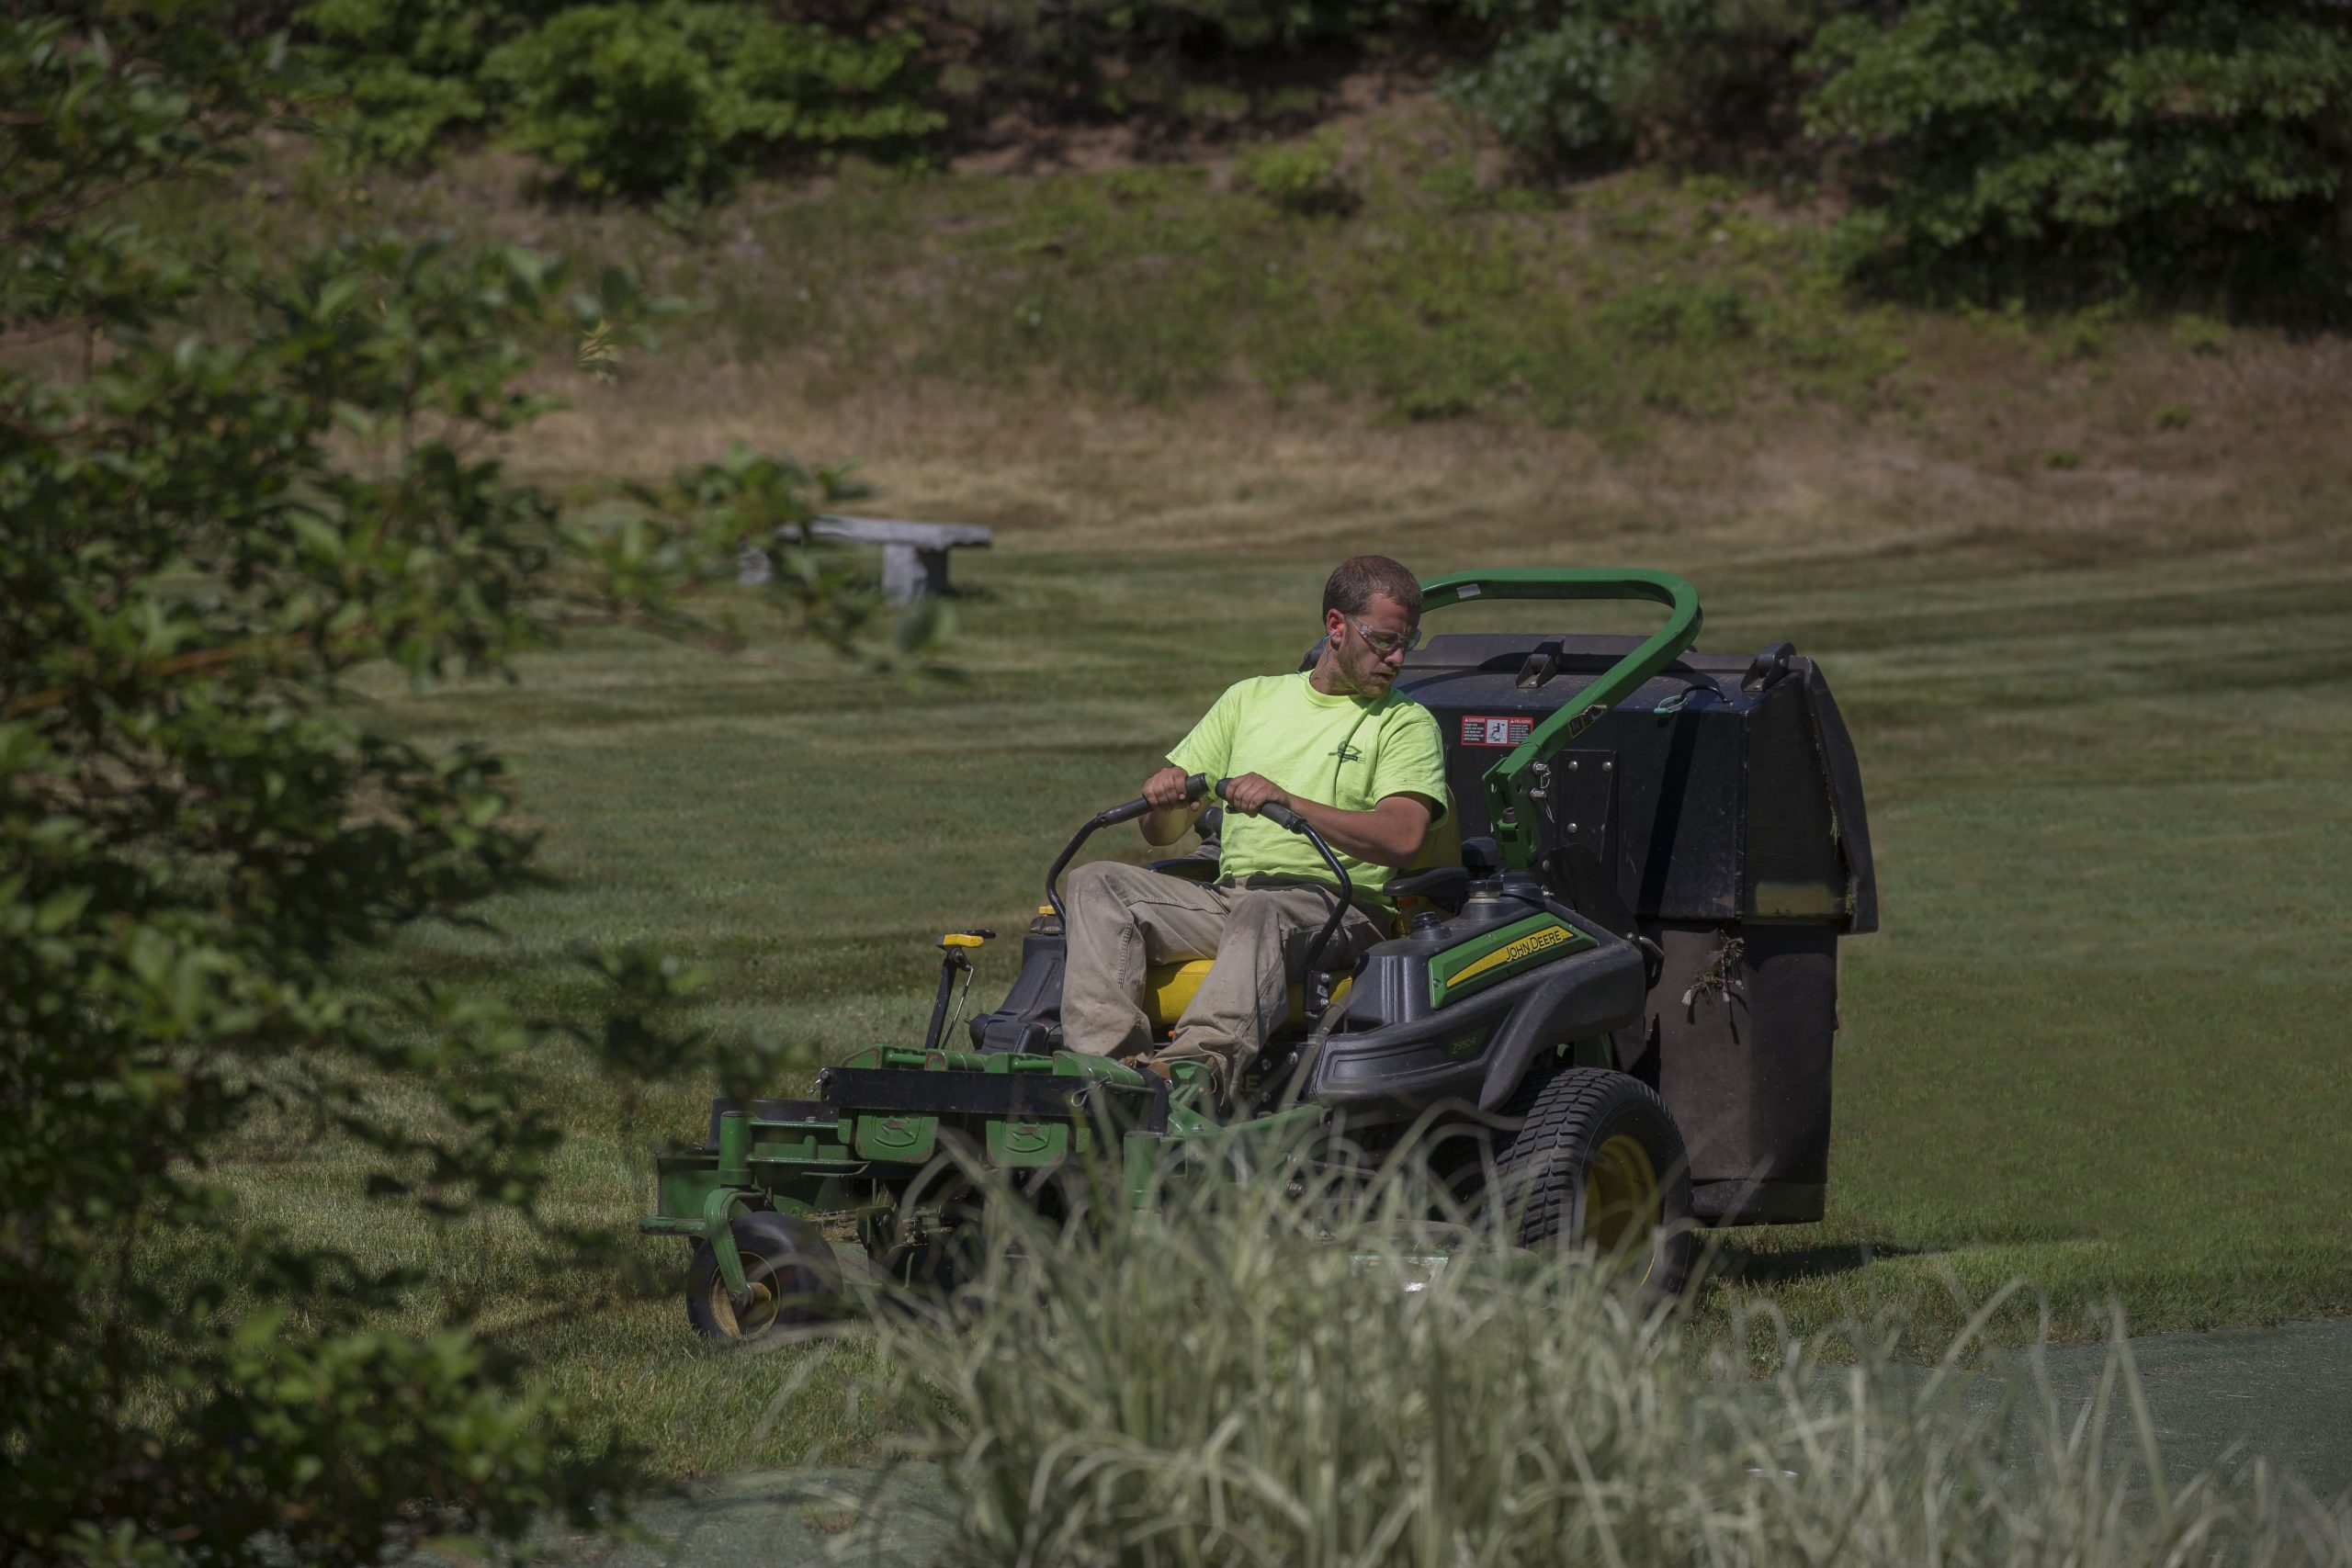 Greenscape employee mowing at Bourne Condos.